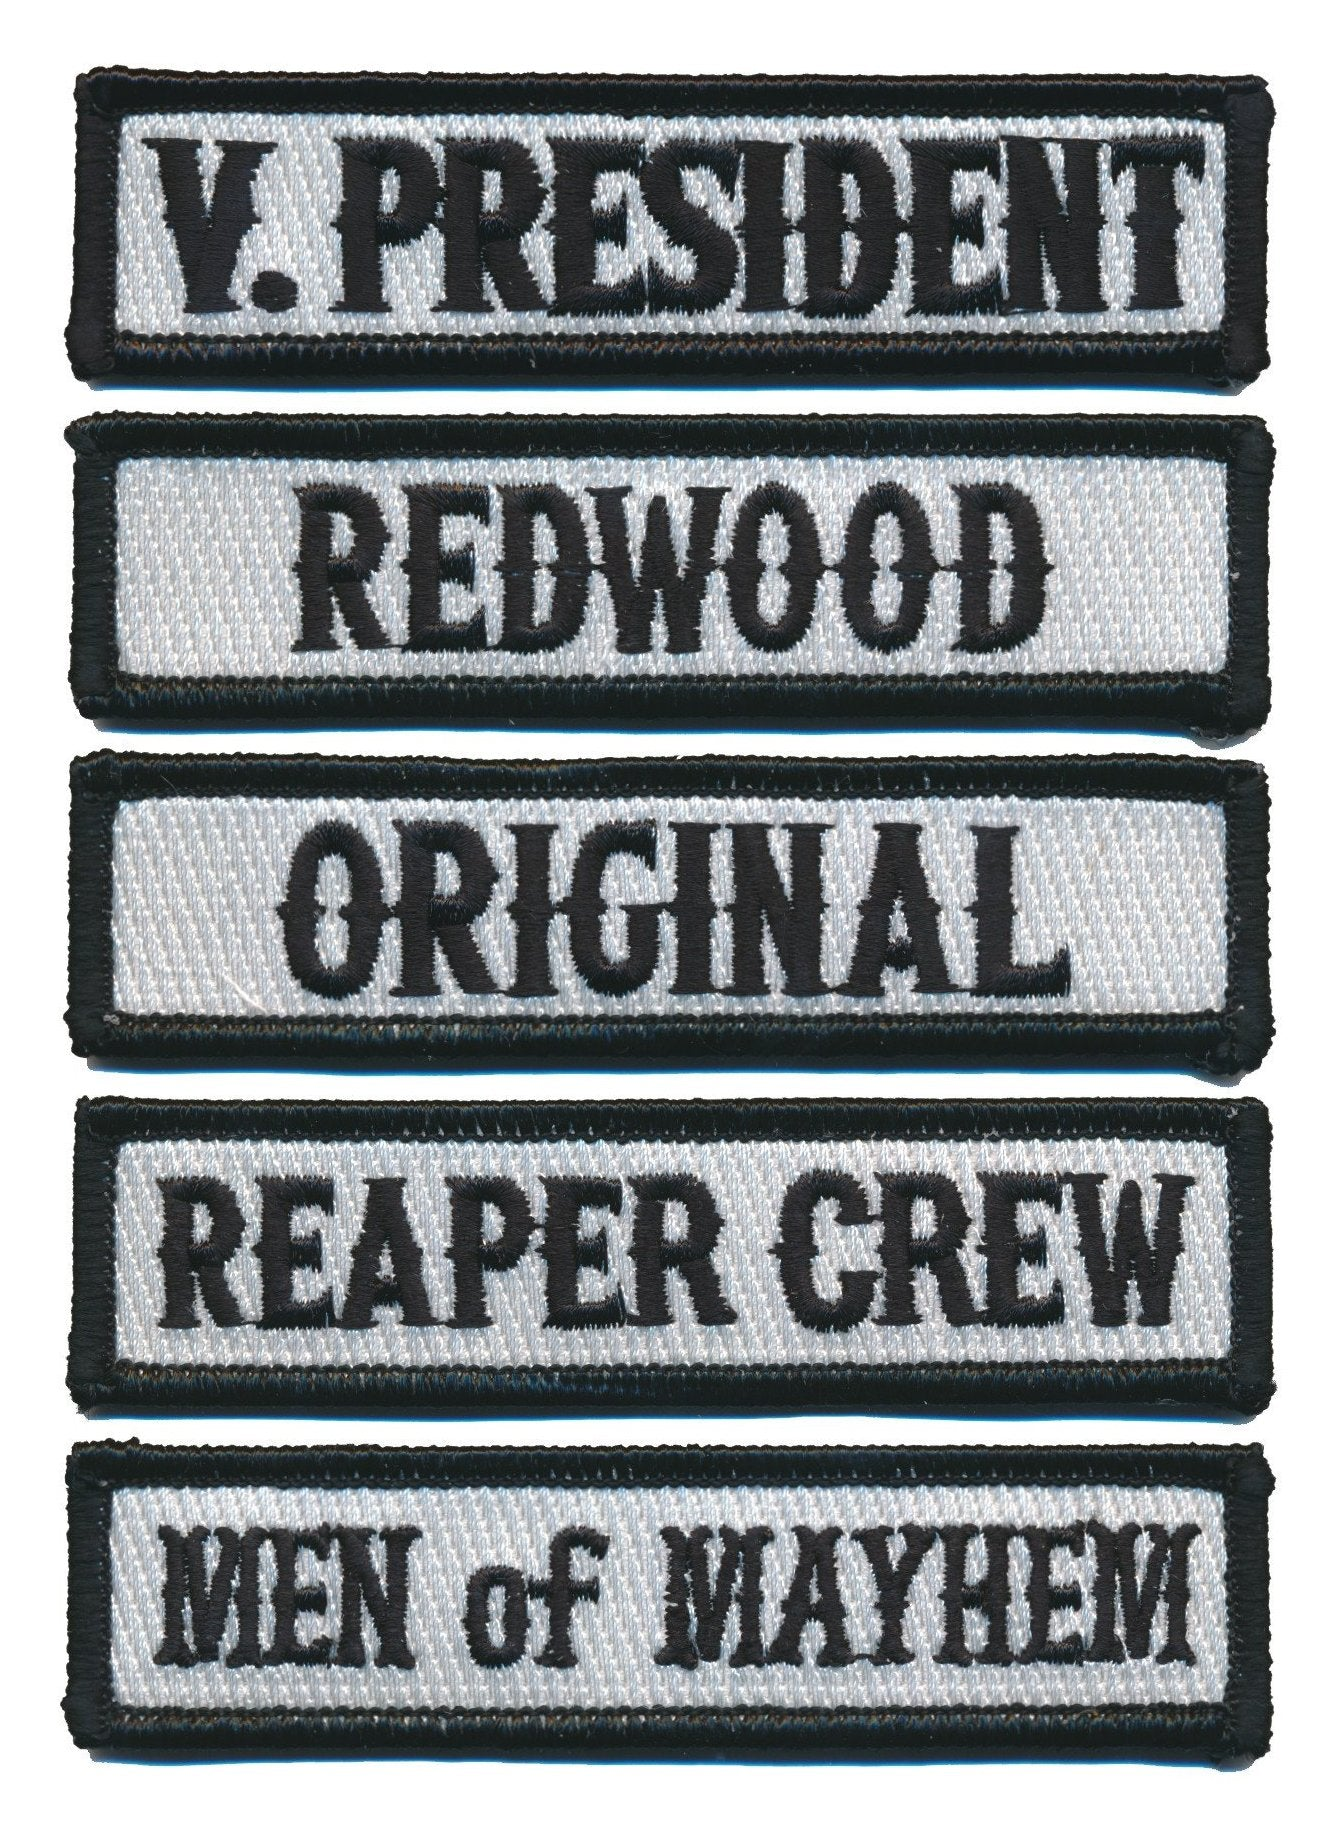 Front of Vest Outlaw Jacket Officer Motorcycle Club MC Title Patches